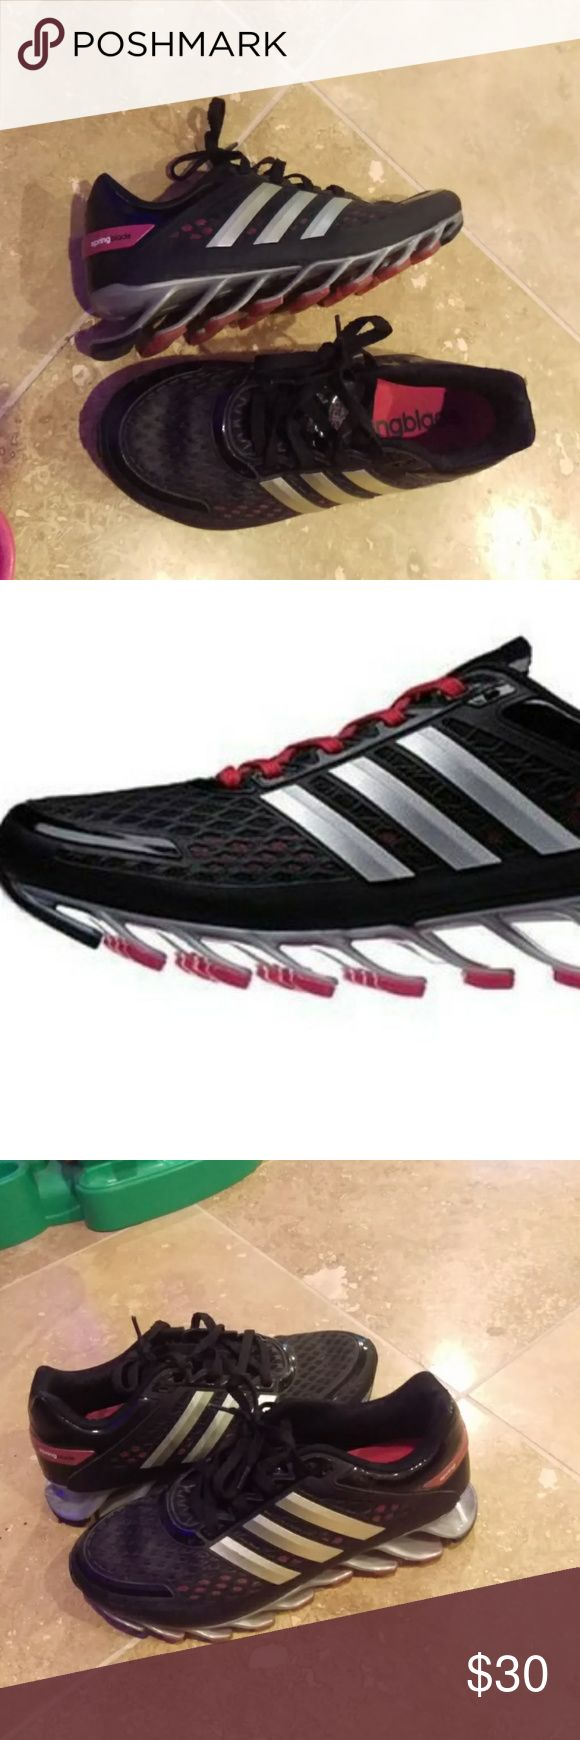 Adidas Running Black/Pink Slingblade Shoe Size 9 Springy Super Cushioning Running Shoes. Worn Twice, Super Comfortable. Just too big. Womens Adidas Running Black/Pink/Silver Slingblade Shoe Size 9. Retails for 115. Barely remote wear. adidas Shoes Athletic Shoes